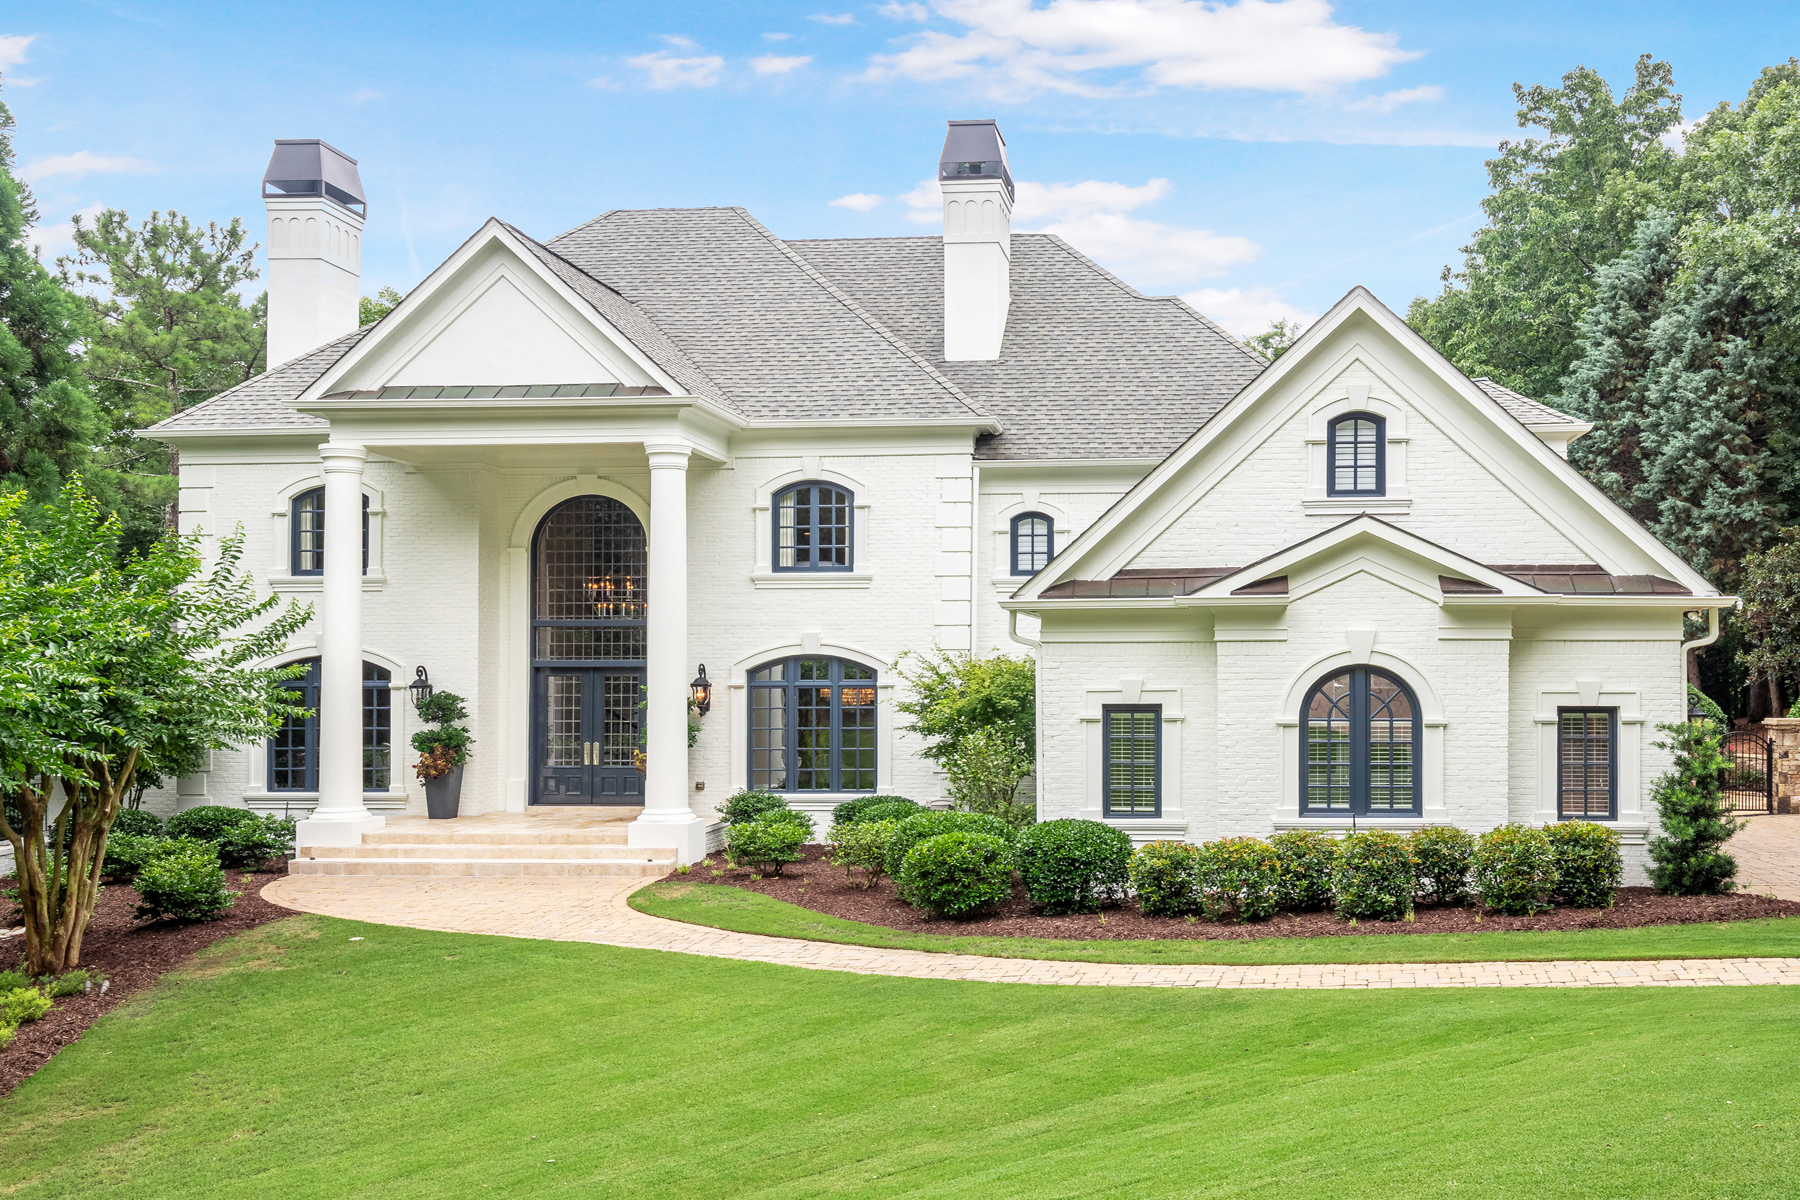 Single Family Homes for Active at Exceptional Better Than New Country Club Of The South Estate 8957 Old Southwick Pass Johns Creek, Georgia 30022 United States